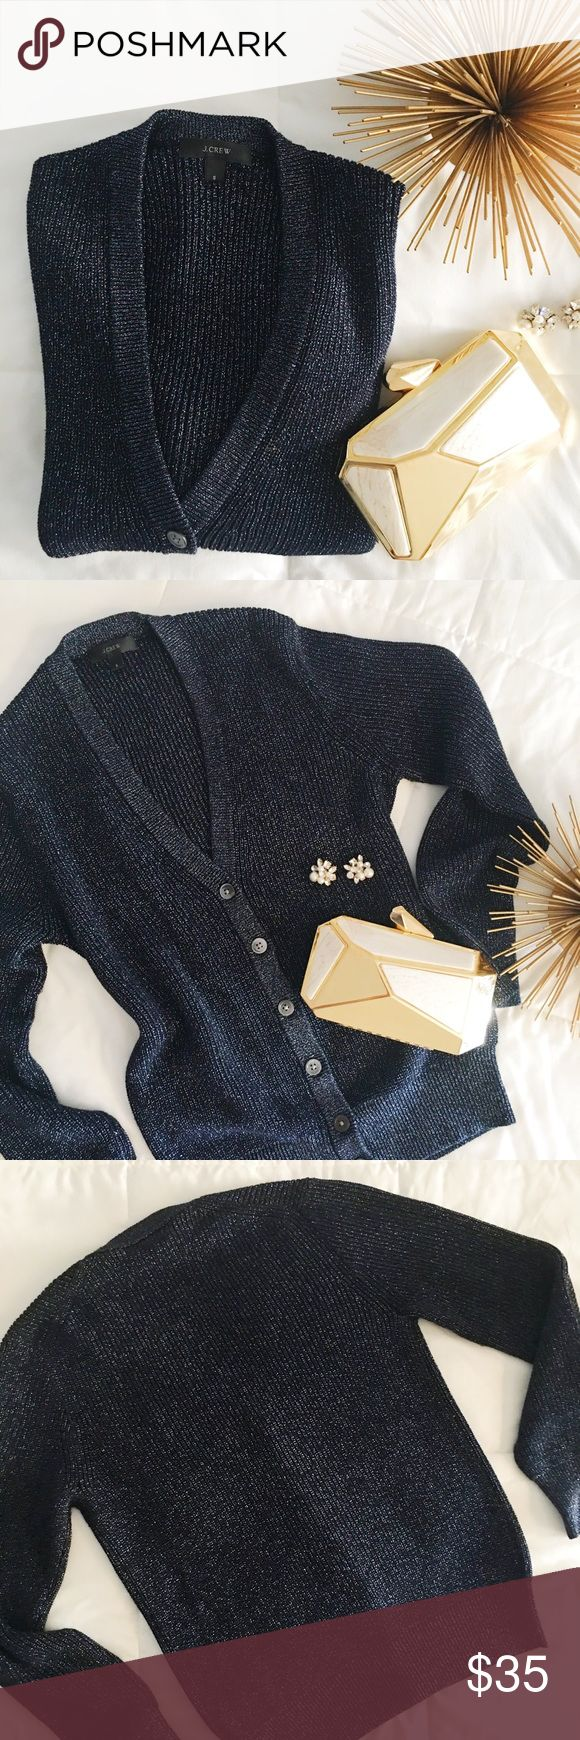 J. Crew Metallic Navy Blue and Silver Cardigan Super fun and festive metallic cardigan. Navy blue and silver. Size small. Has stretch to it. J. Crew Sweaters Cardigans